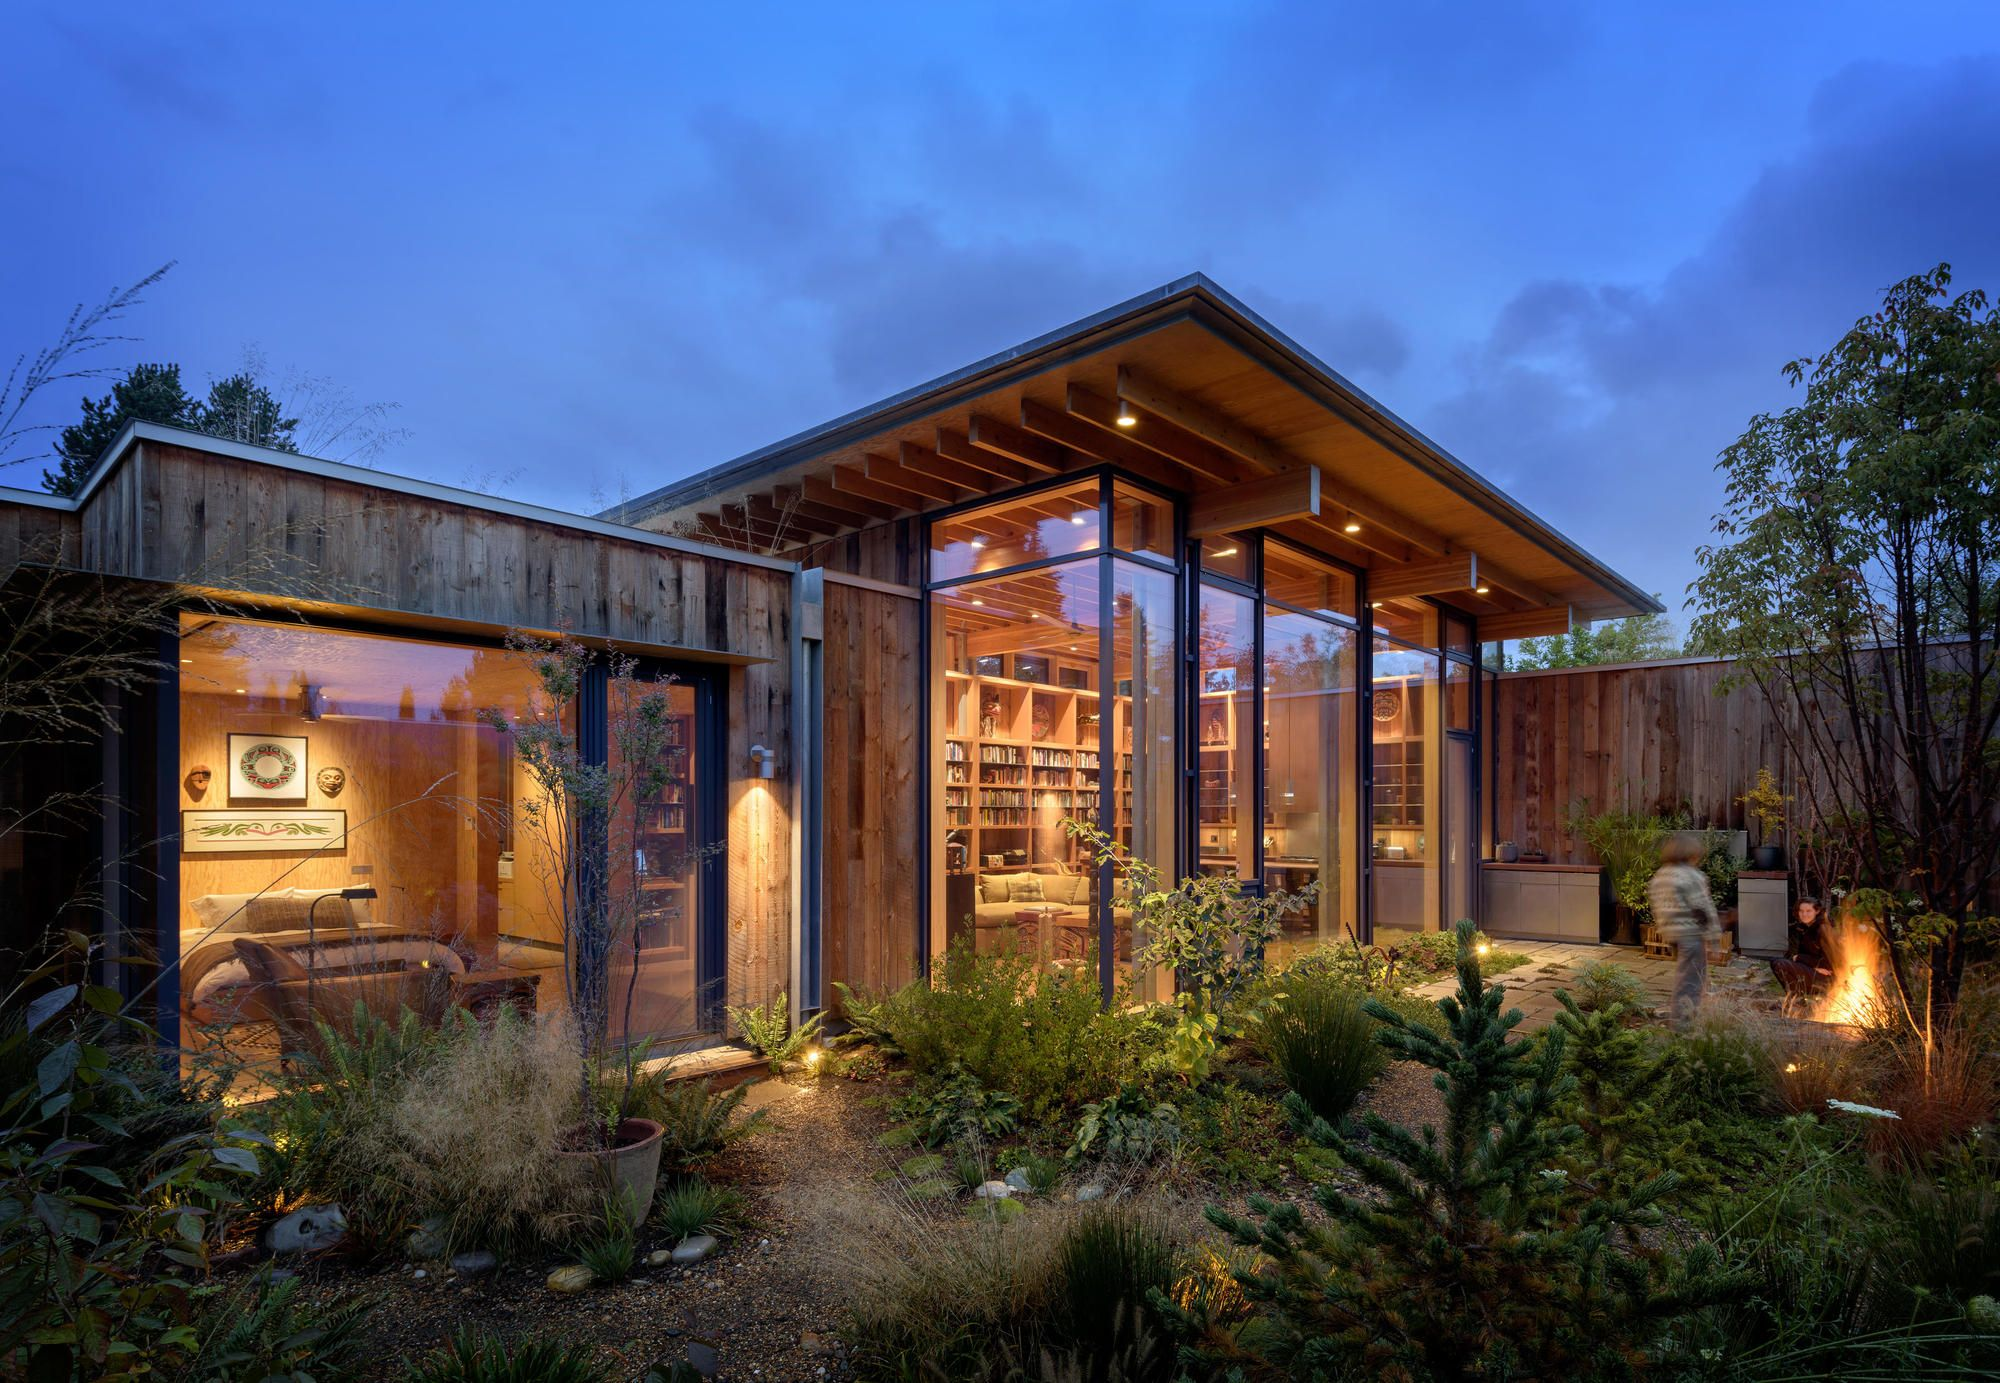 City Cabin Olson Kundig With Images Architecture Mid Century House Architect